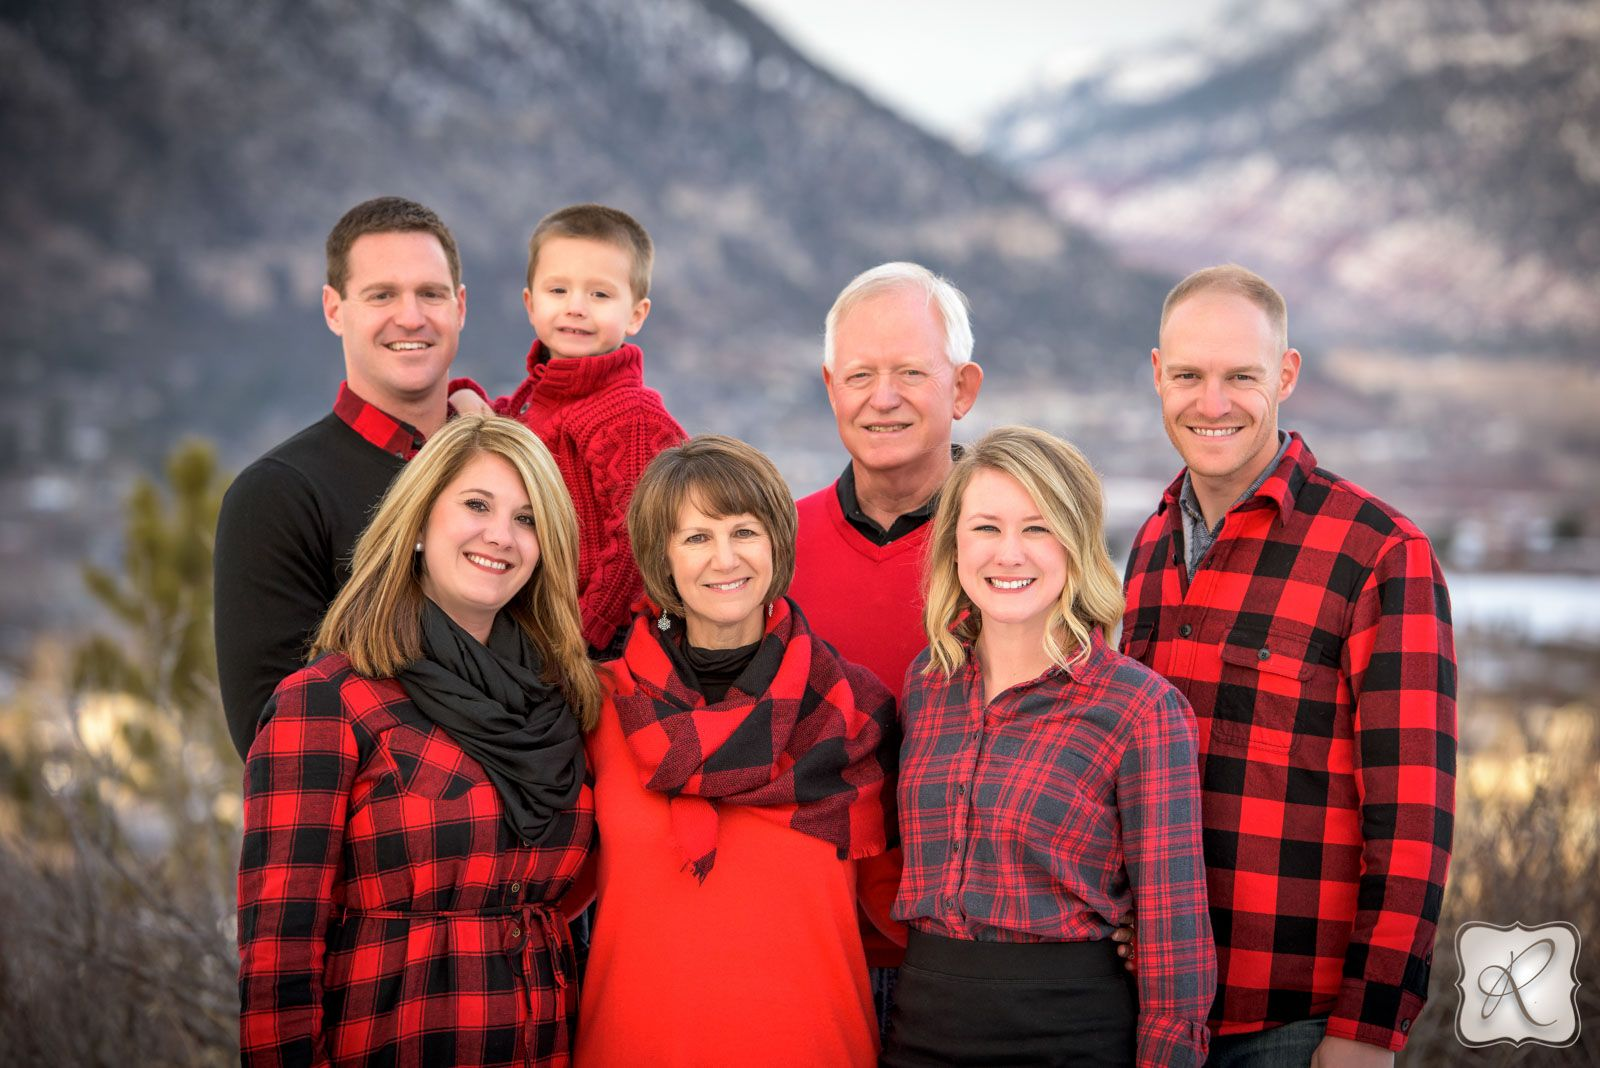 Mangus Family Portraits in Durango | Pinterest | Red flannel ...